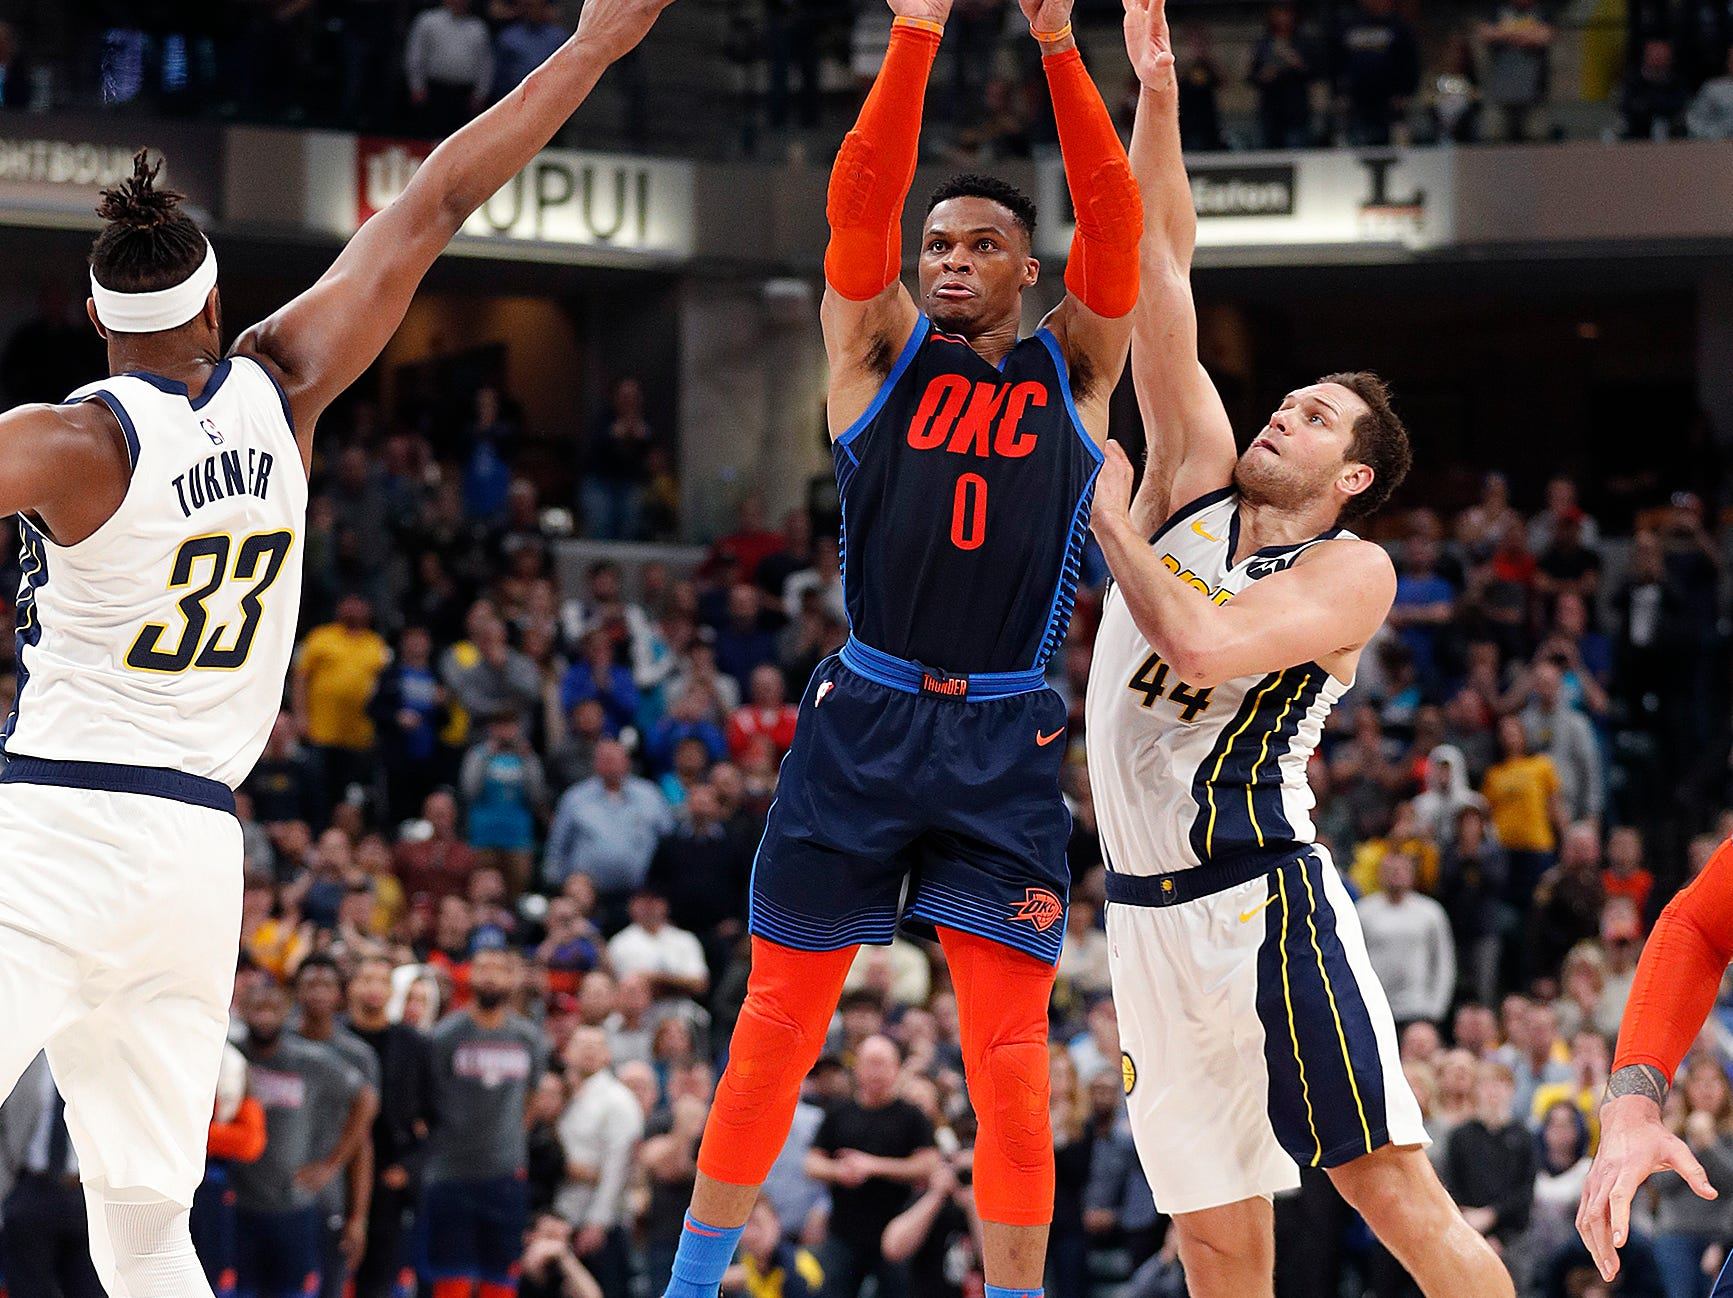 Oklahoma City Thunder guard Russell Westbrook (0) puts up a last second shot in an attempt to win the game as time runs out in the fourth quarter of their game at Bankers Life Fieldhouse on Thursday, Mar. 14, 2019. The Pacers defeated the Thunder 108-106.